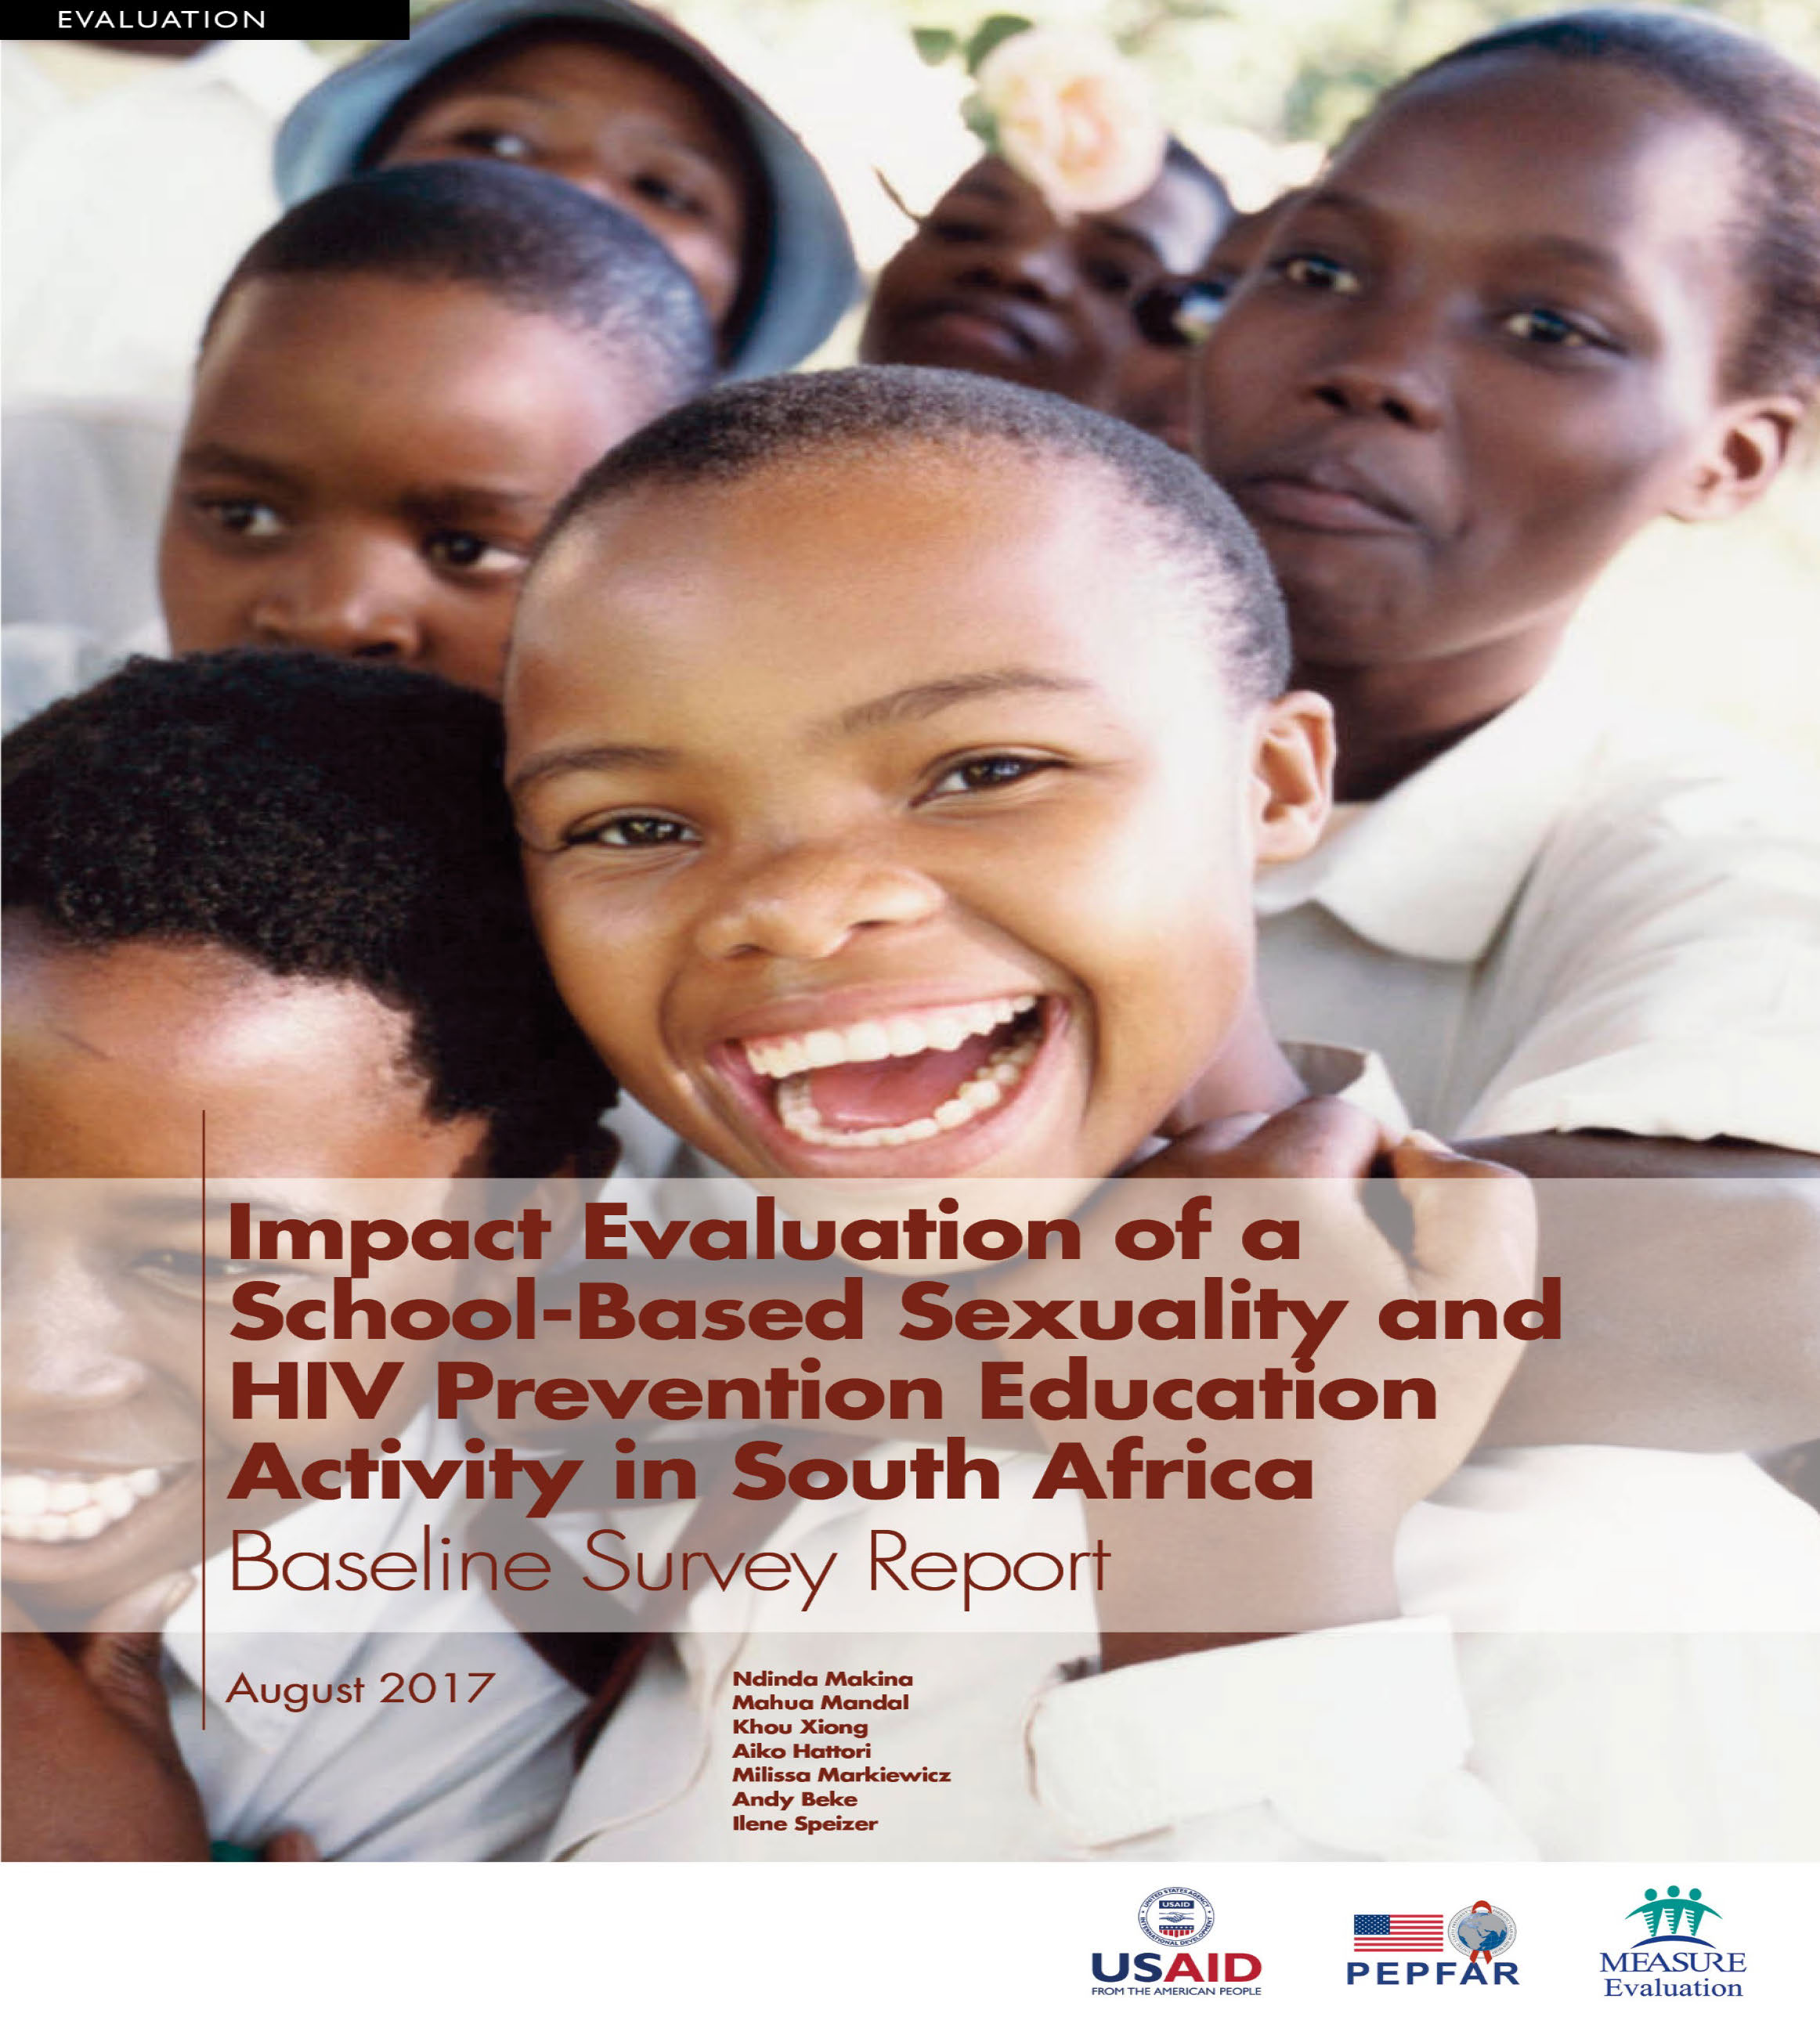 Impact Evaluation of a School-Based Sexuality and HIV Prevention Education Activity in South Africa  Baseline Survey Report